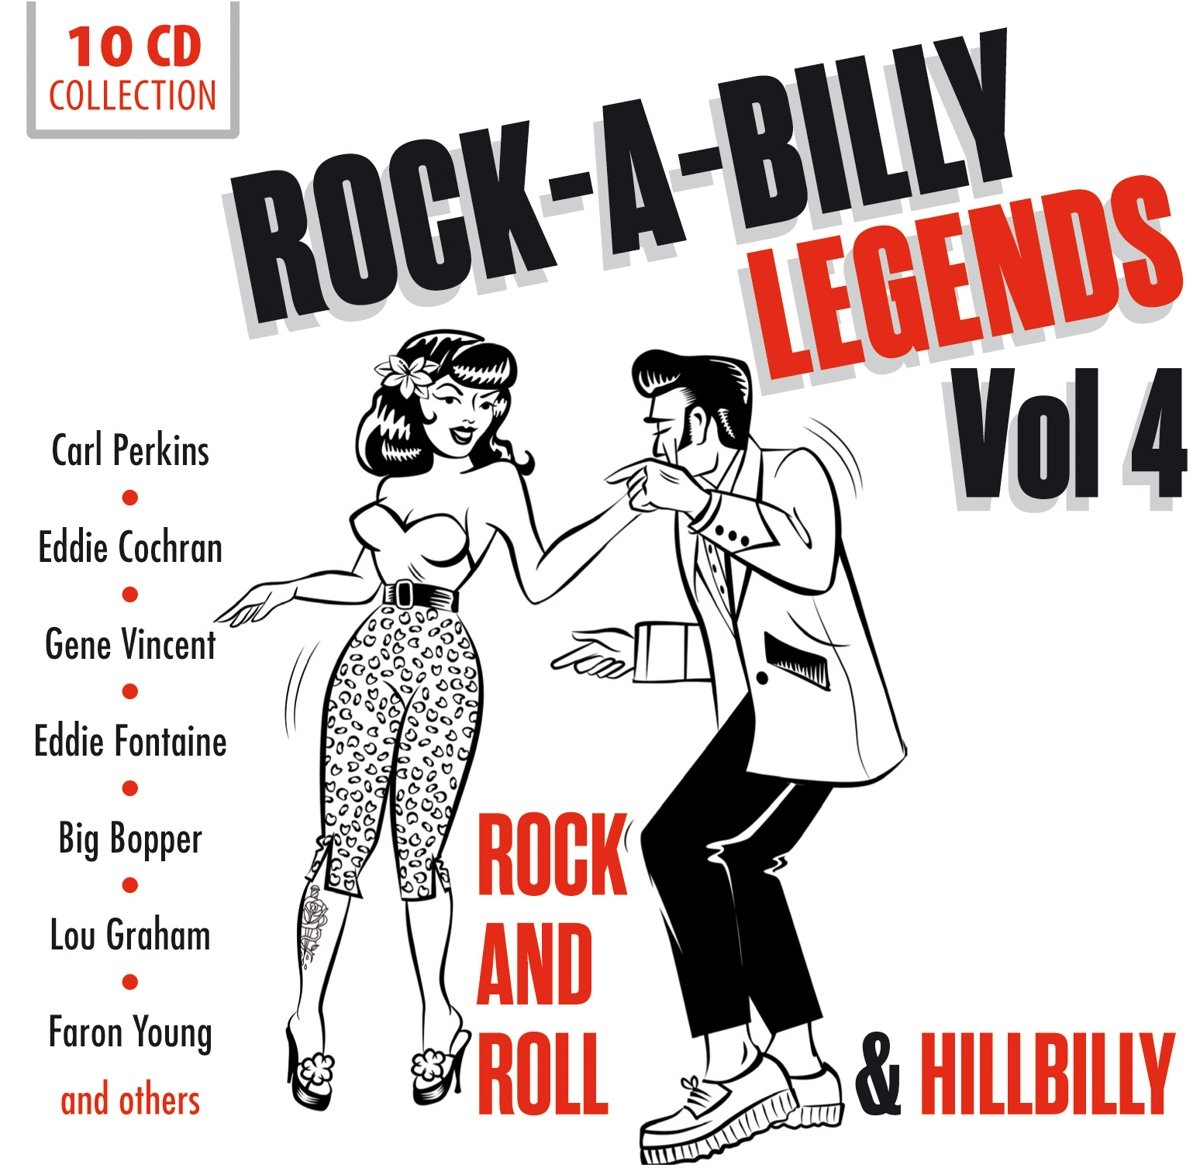 Rock-A-Billy Legends Vol. 4 - Roll Ranking TOP12 Rock And Max 71% OFF Hillbilly